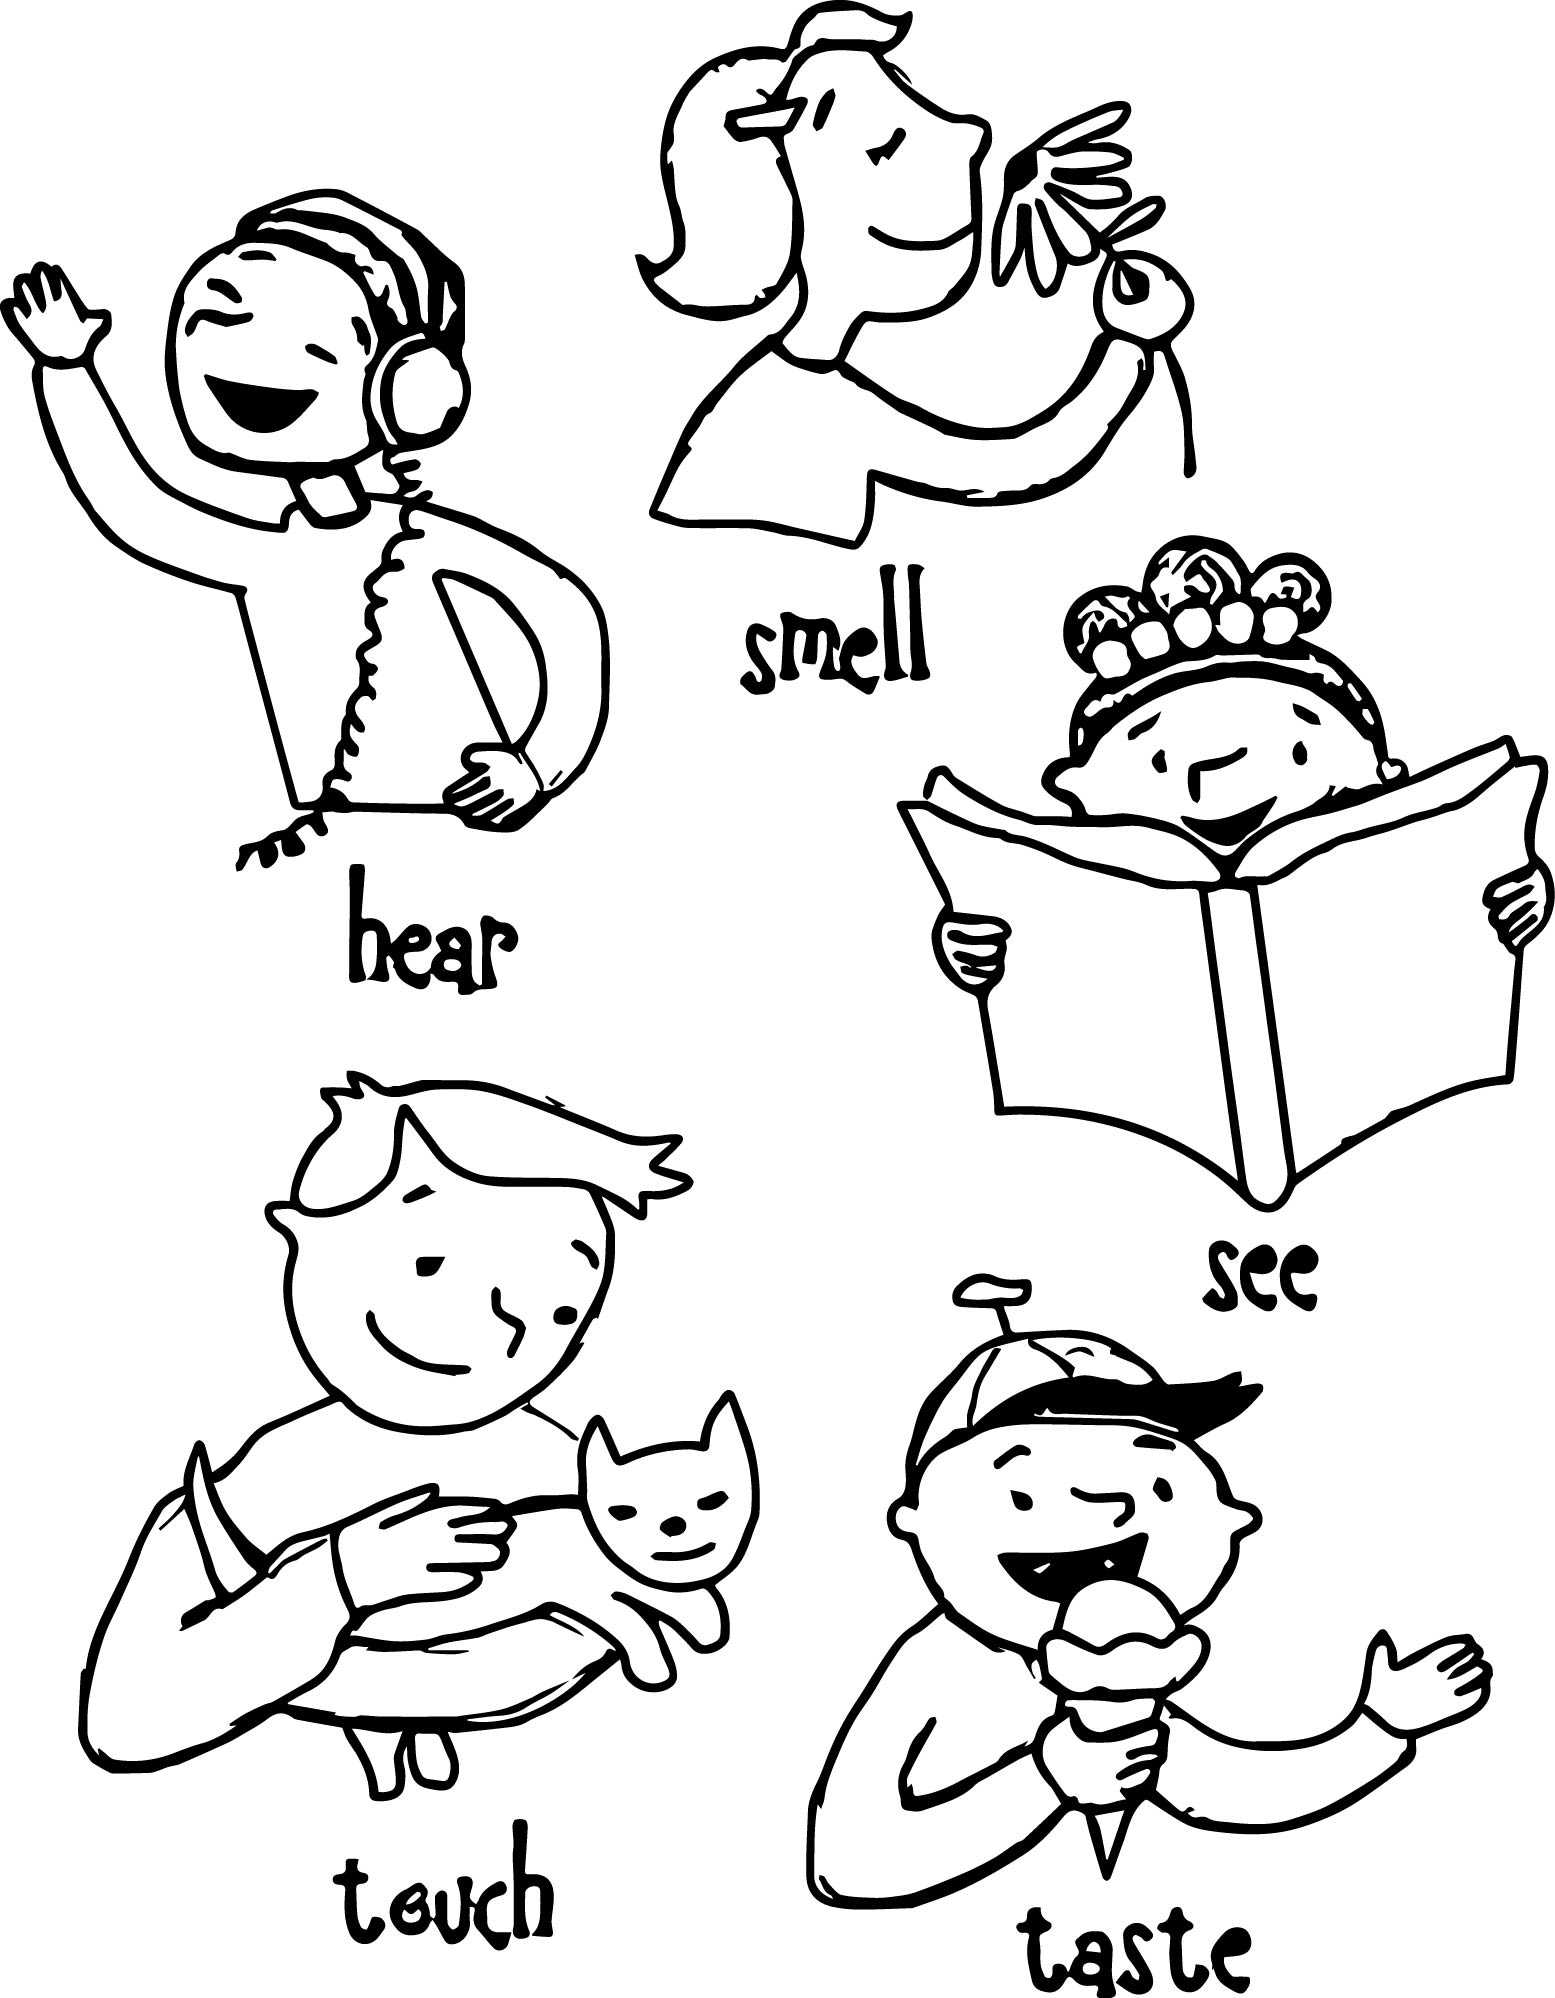 Children 5 Senses Coloring Page